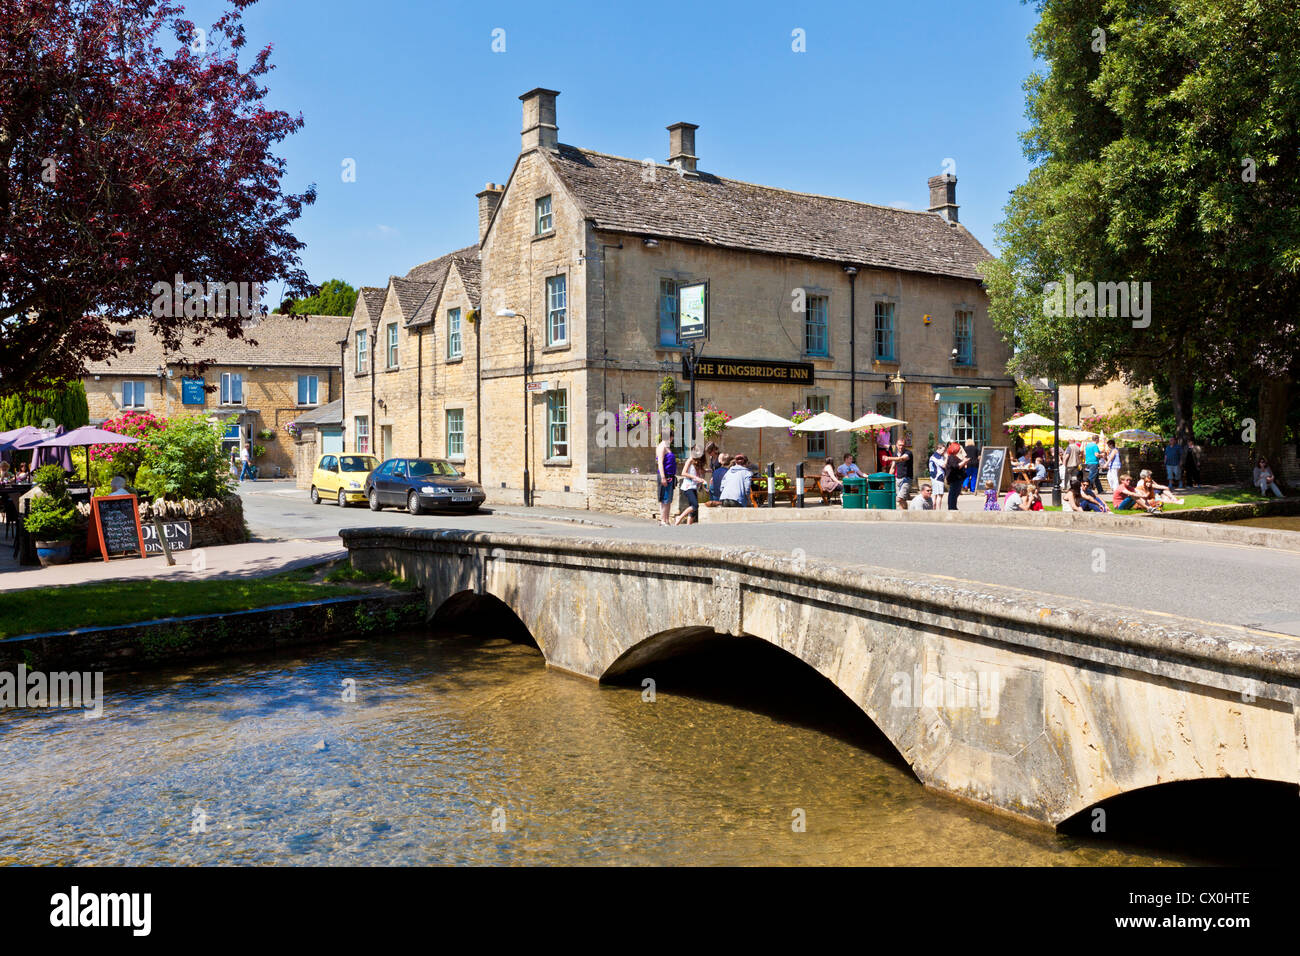 Old stone bridge over the River Windrush throught the centre of Bourton on the Water Gloucestershire England UK - Stock Image